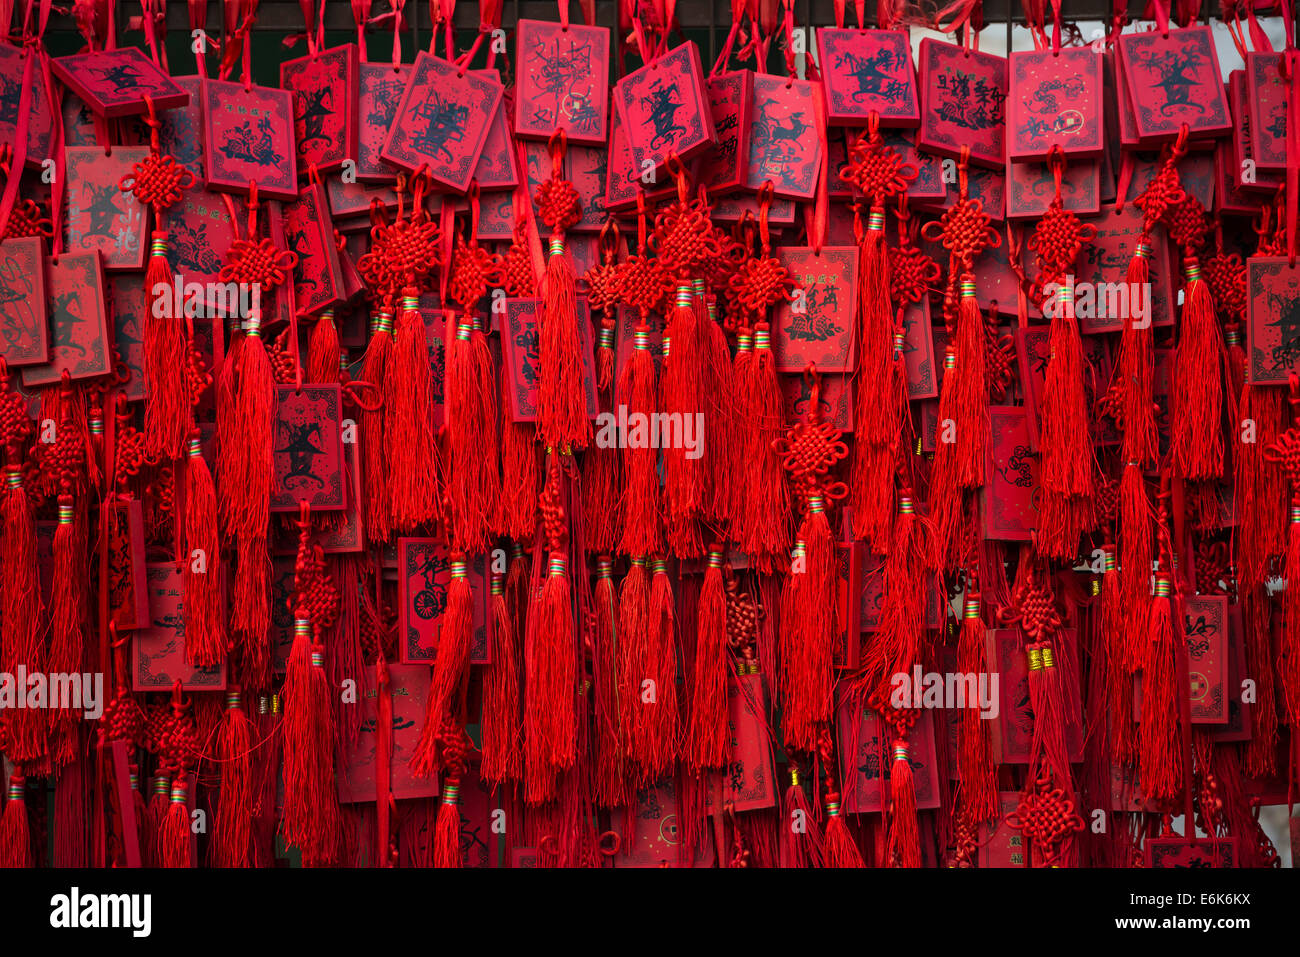 Red Chinese wishing cards, Beijing, China - Stock Image